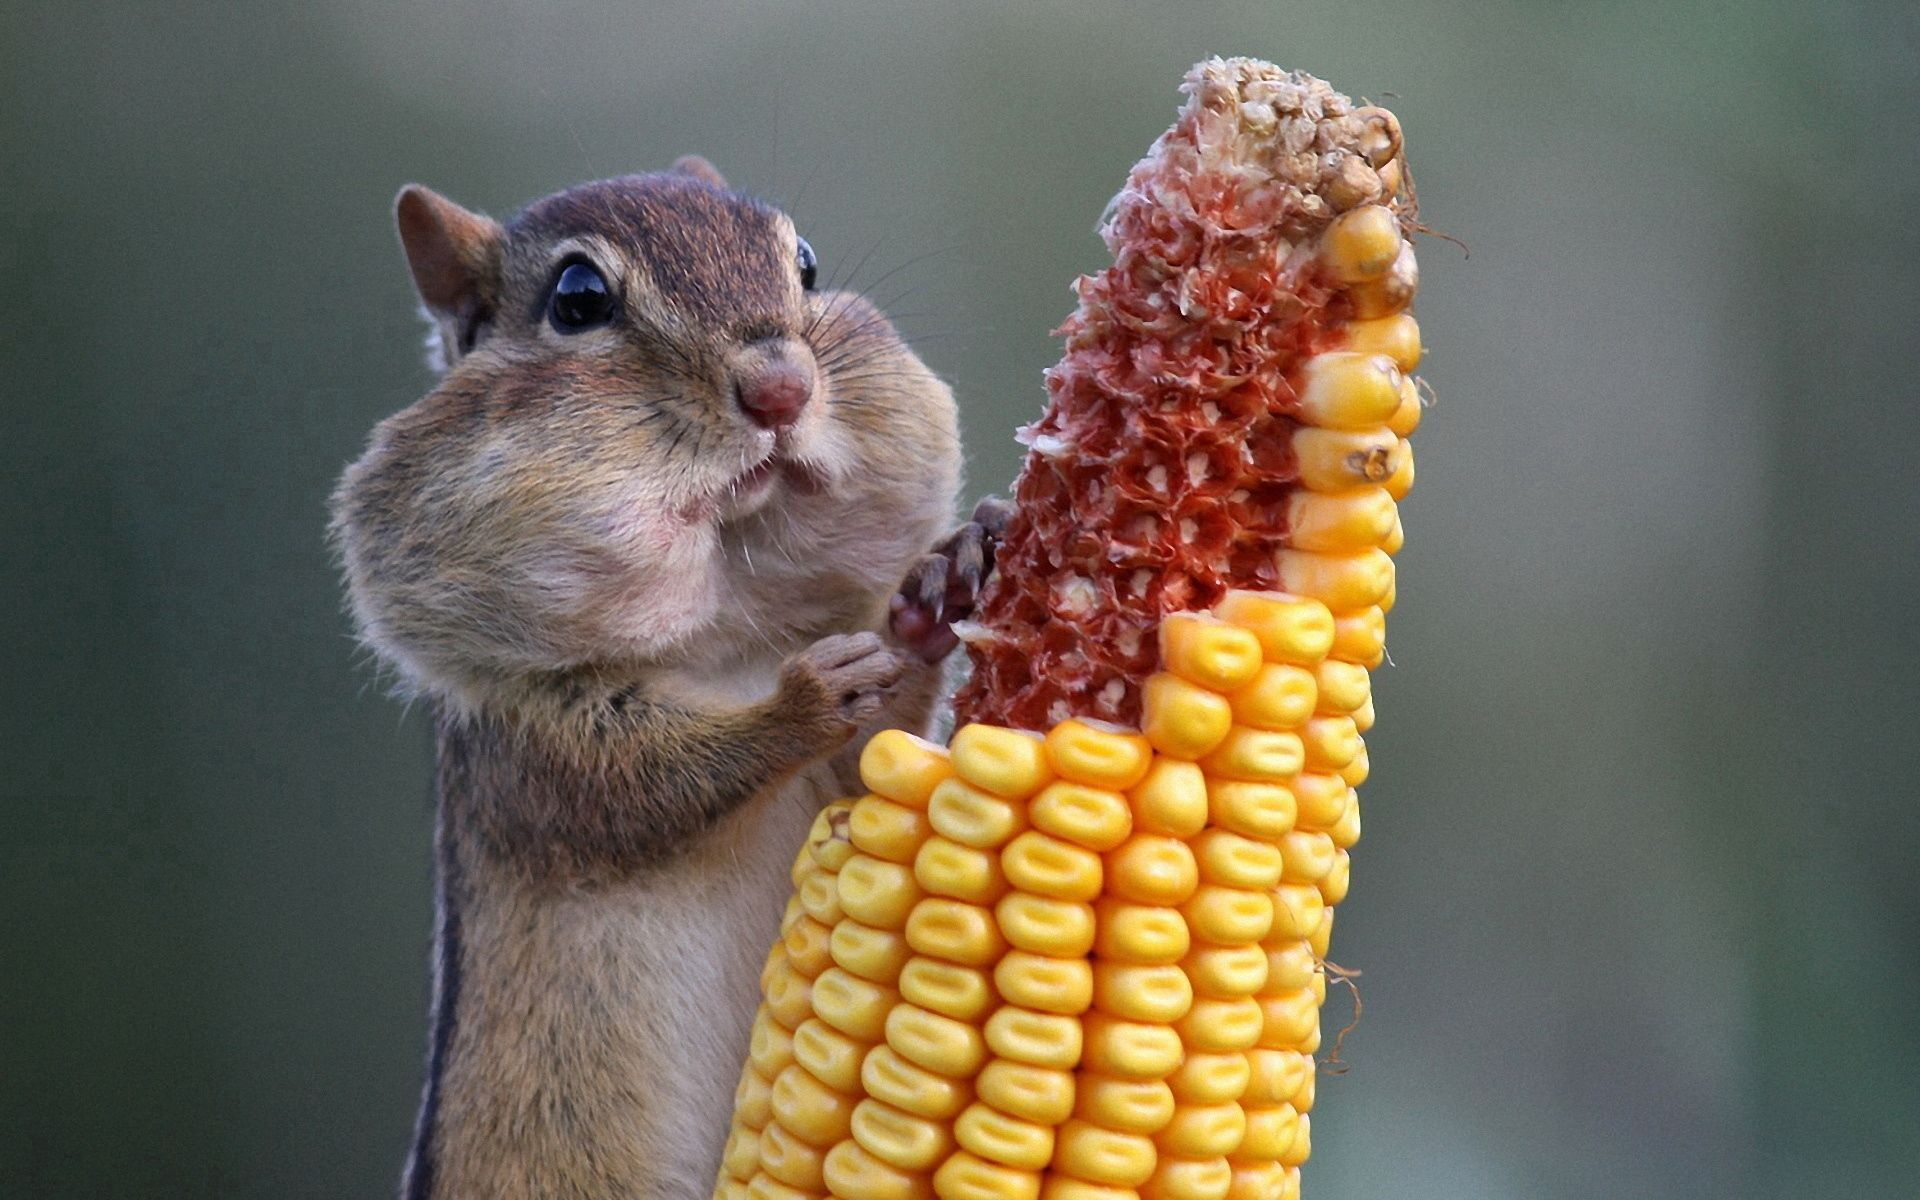 80934 download wallpaper Animals, Squirrel, Corn, Maize, Food screensavers and pictures for free